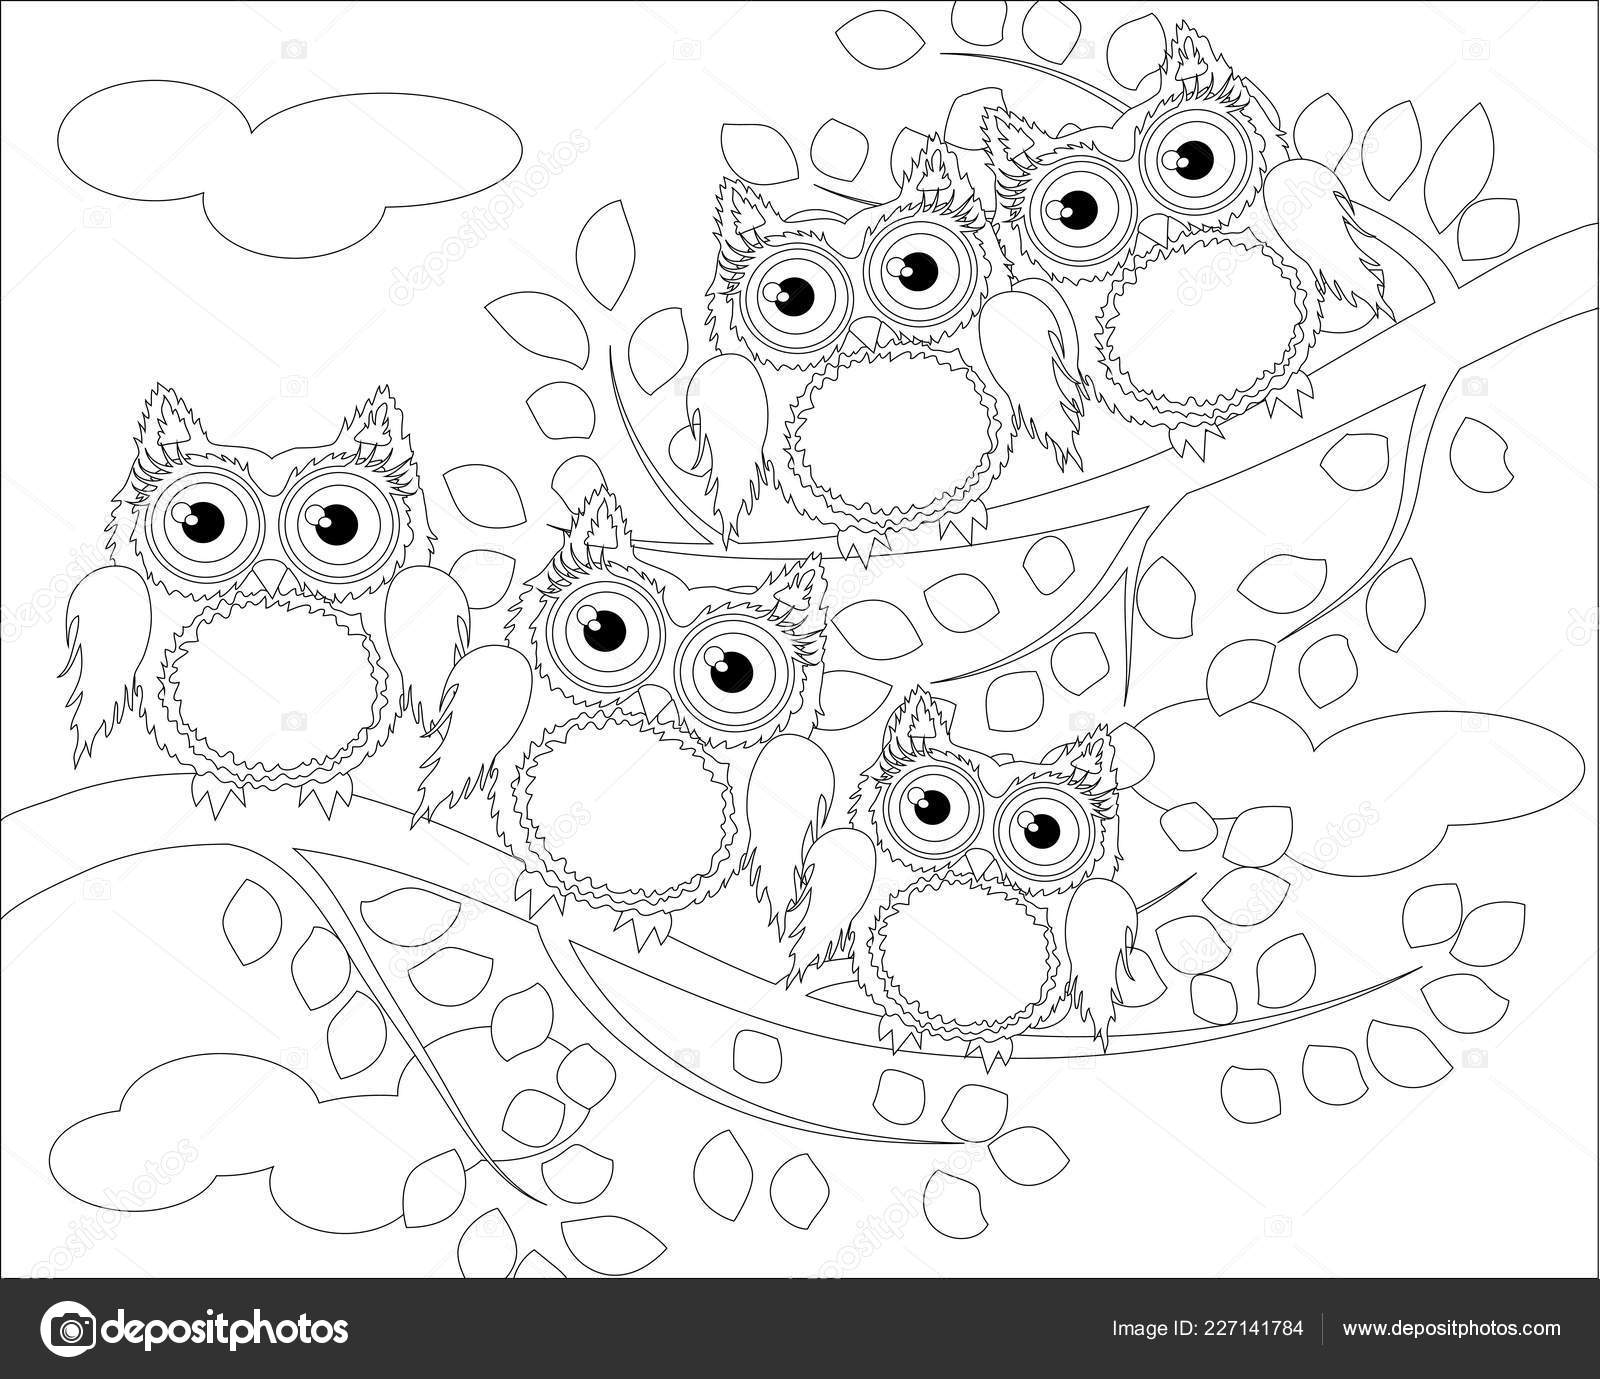 Coloring Book Adult Older Children Coloring Page Cute Owl ...